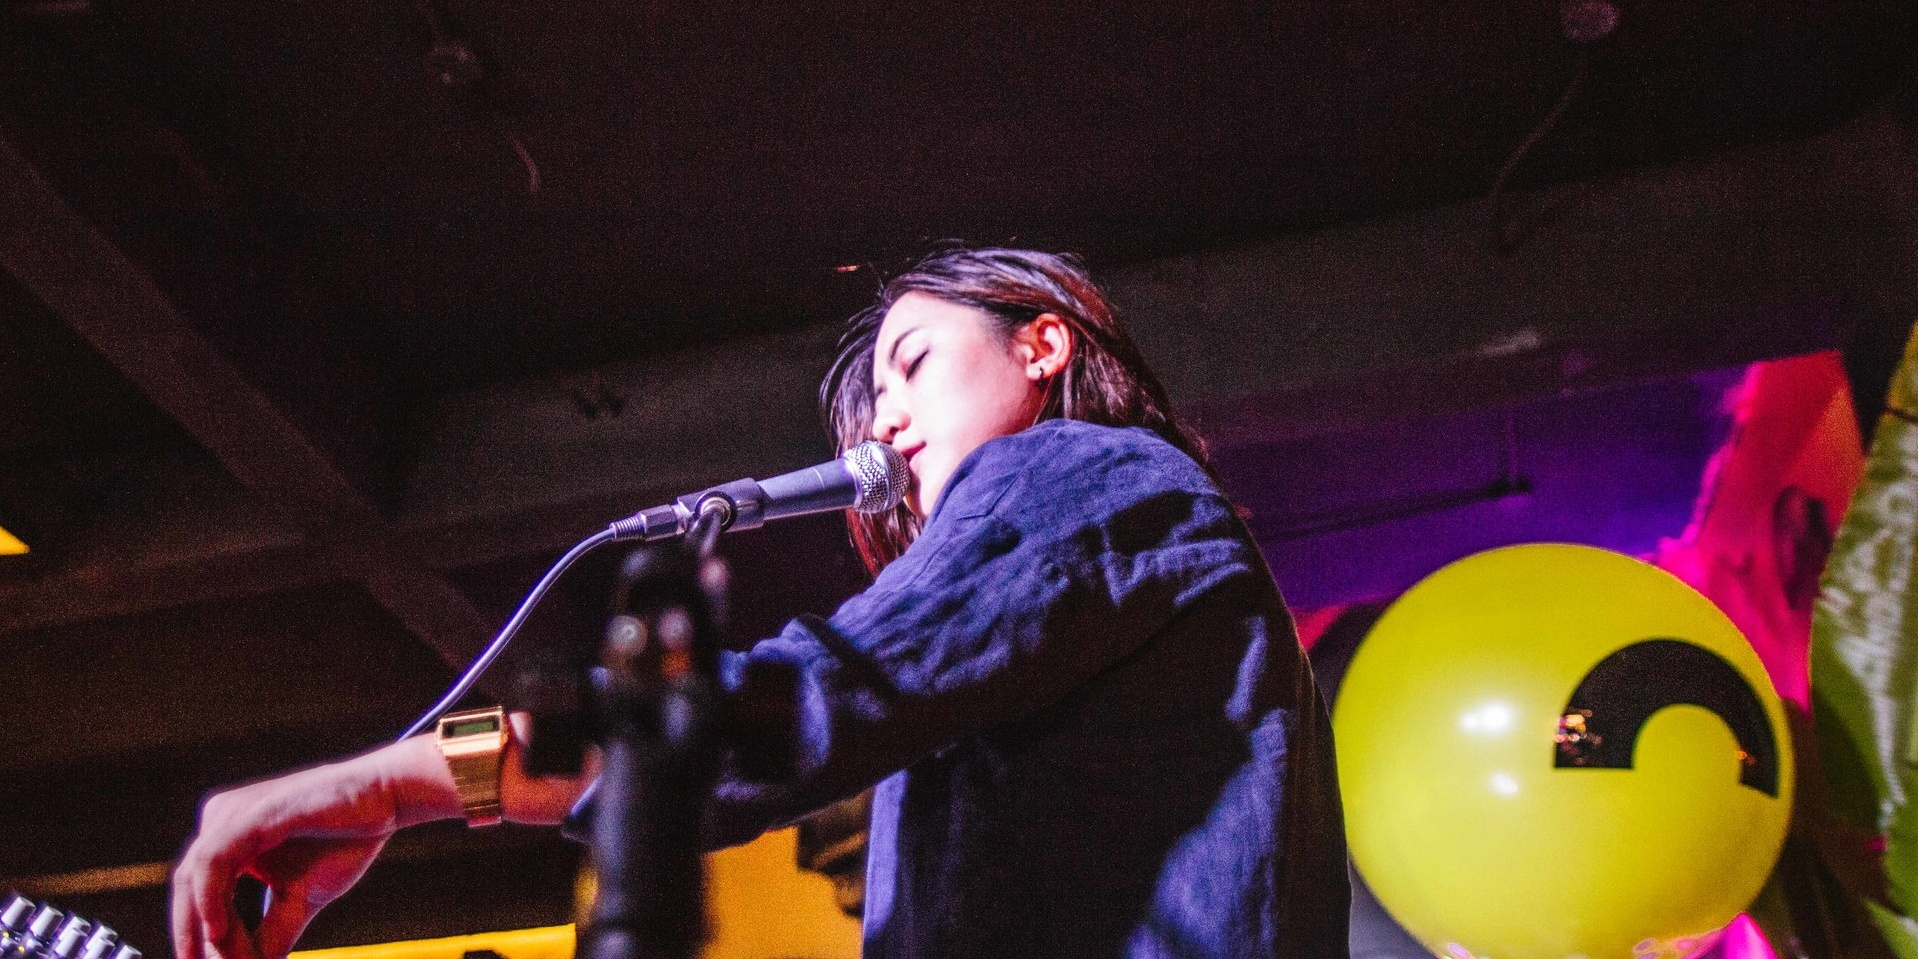 """""""The heart of the teenager is still there"""": BP Valenzuela on half-lit's latest single 'fri the 13th' and upcoming paradigm shift EP – listen"""